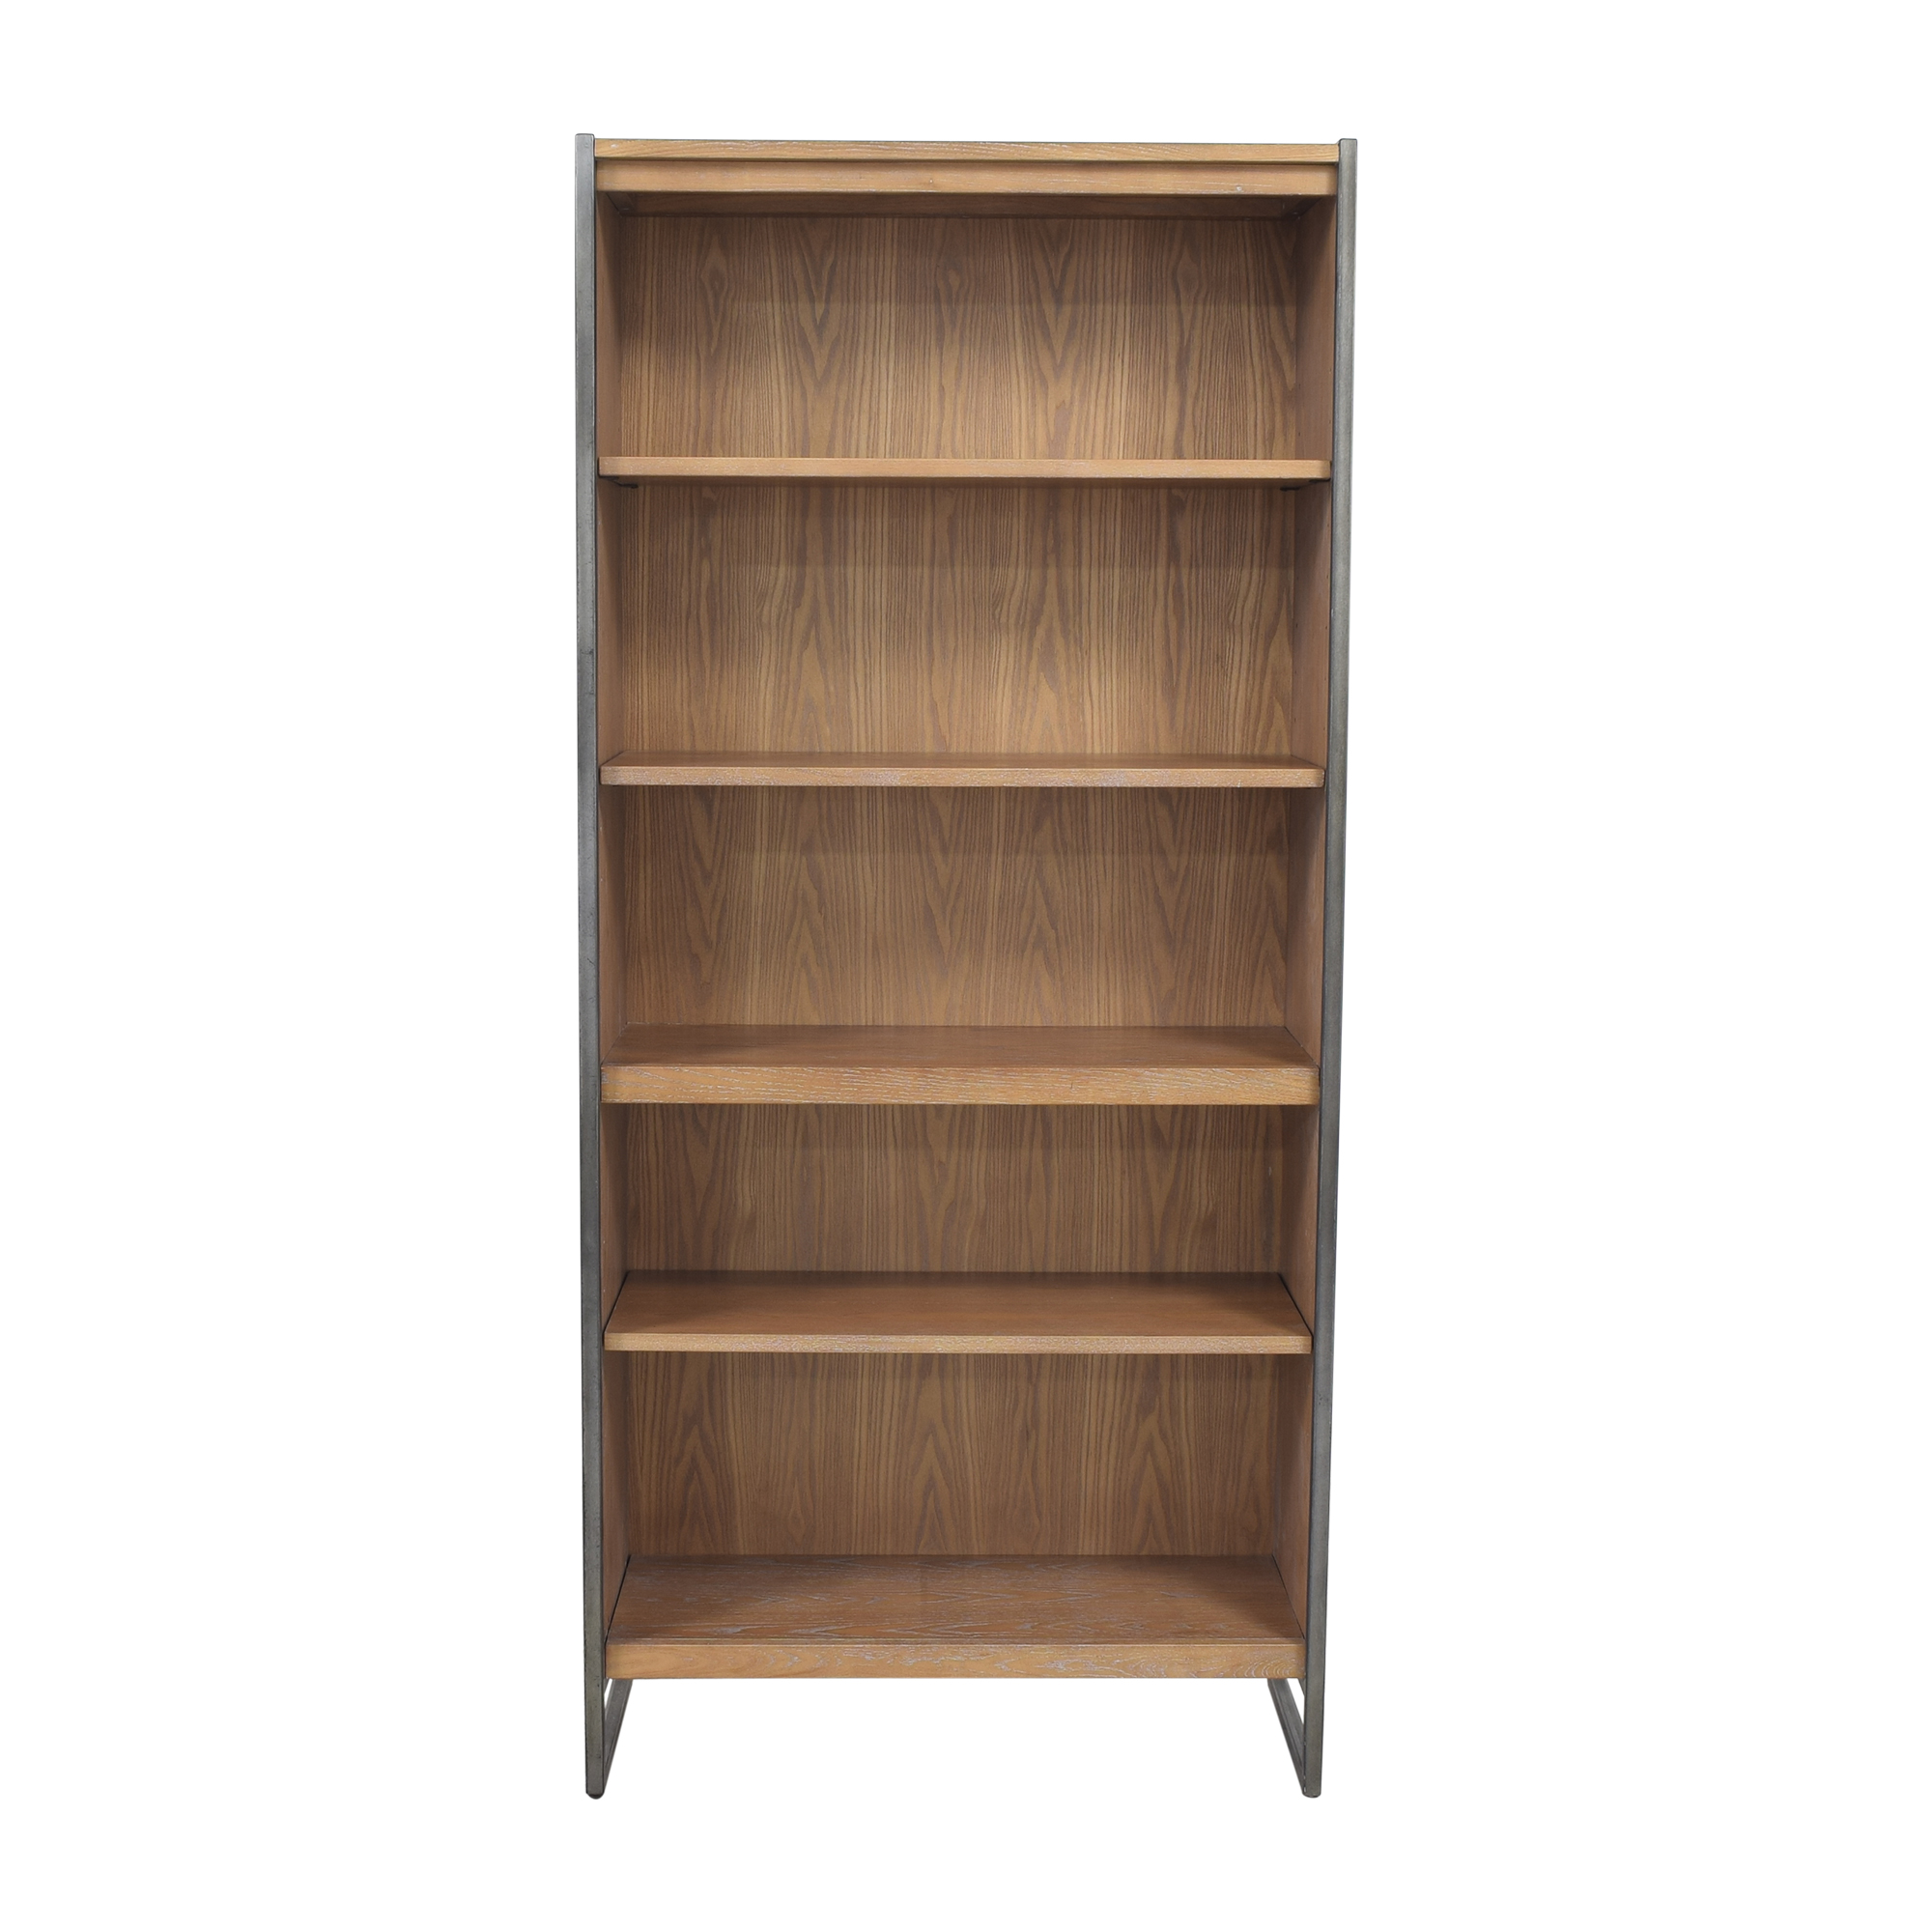 Martin Home Furnishings Martin Home Furnishings Book Case discount